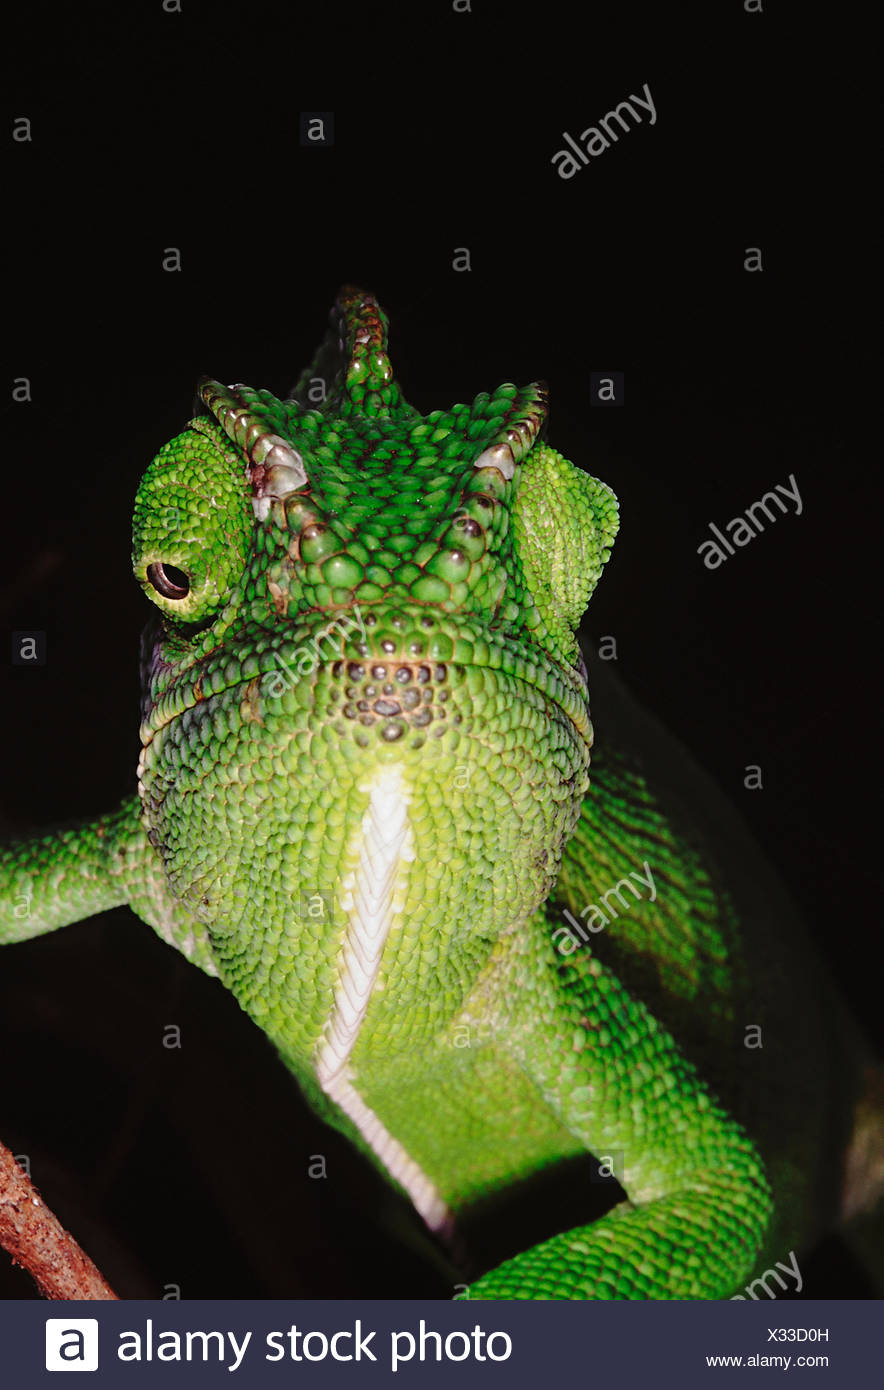 The chameleon has the ability to change its colour as well as shade depending on its mood and surroundings. Chameleon Zeylanicus - Stock Image